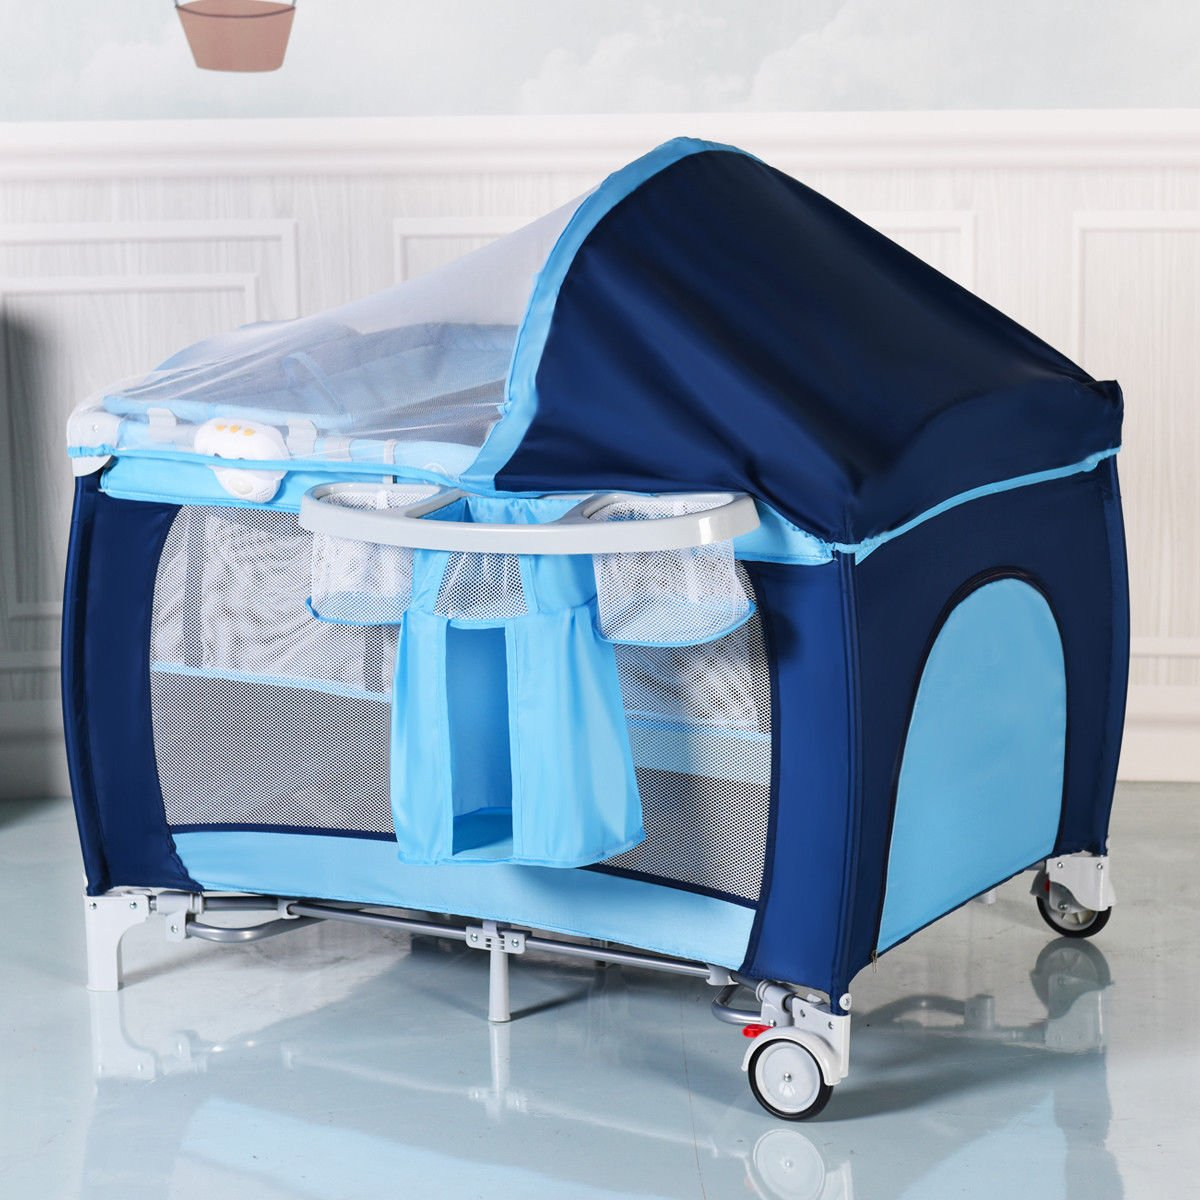 New Foldable Baby Crib Playpen Travel Infant Bassinet Bed Mosquito Net Music w Bag by Costway (Image #2)